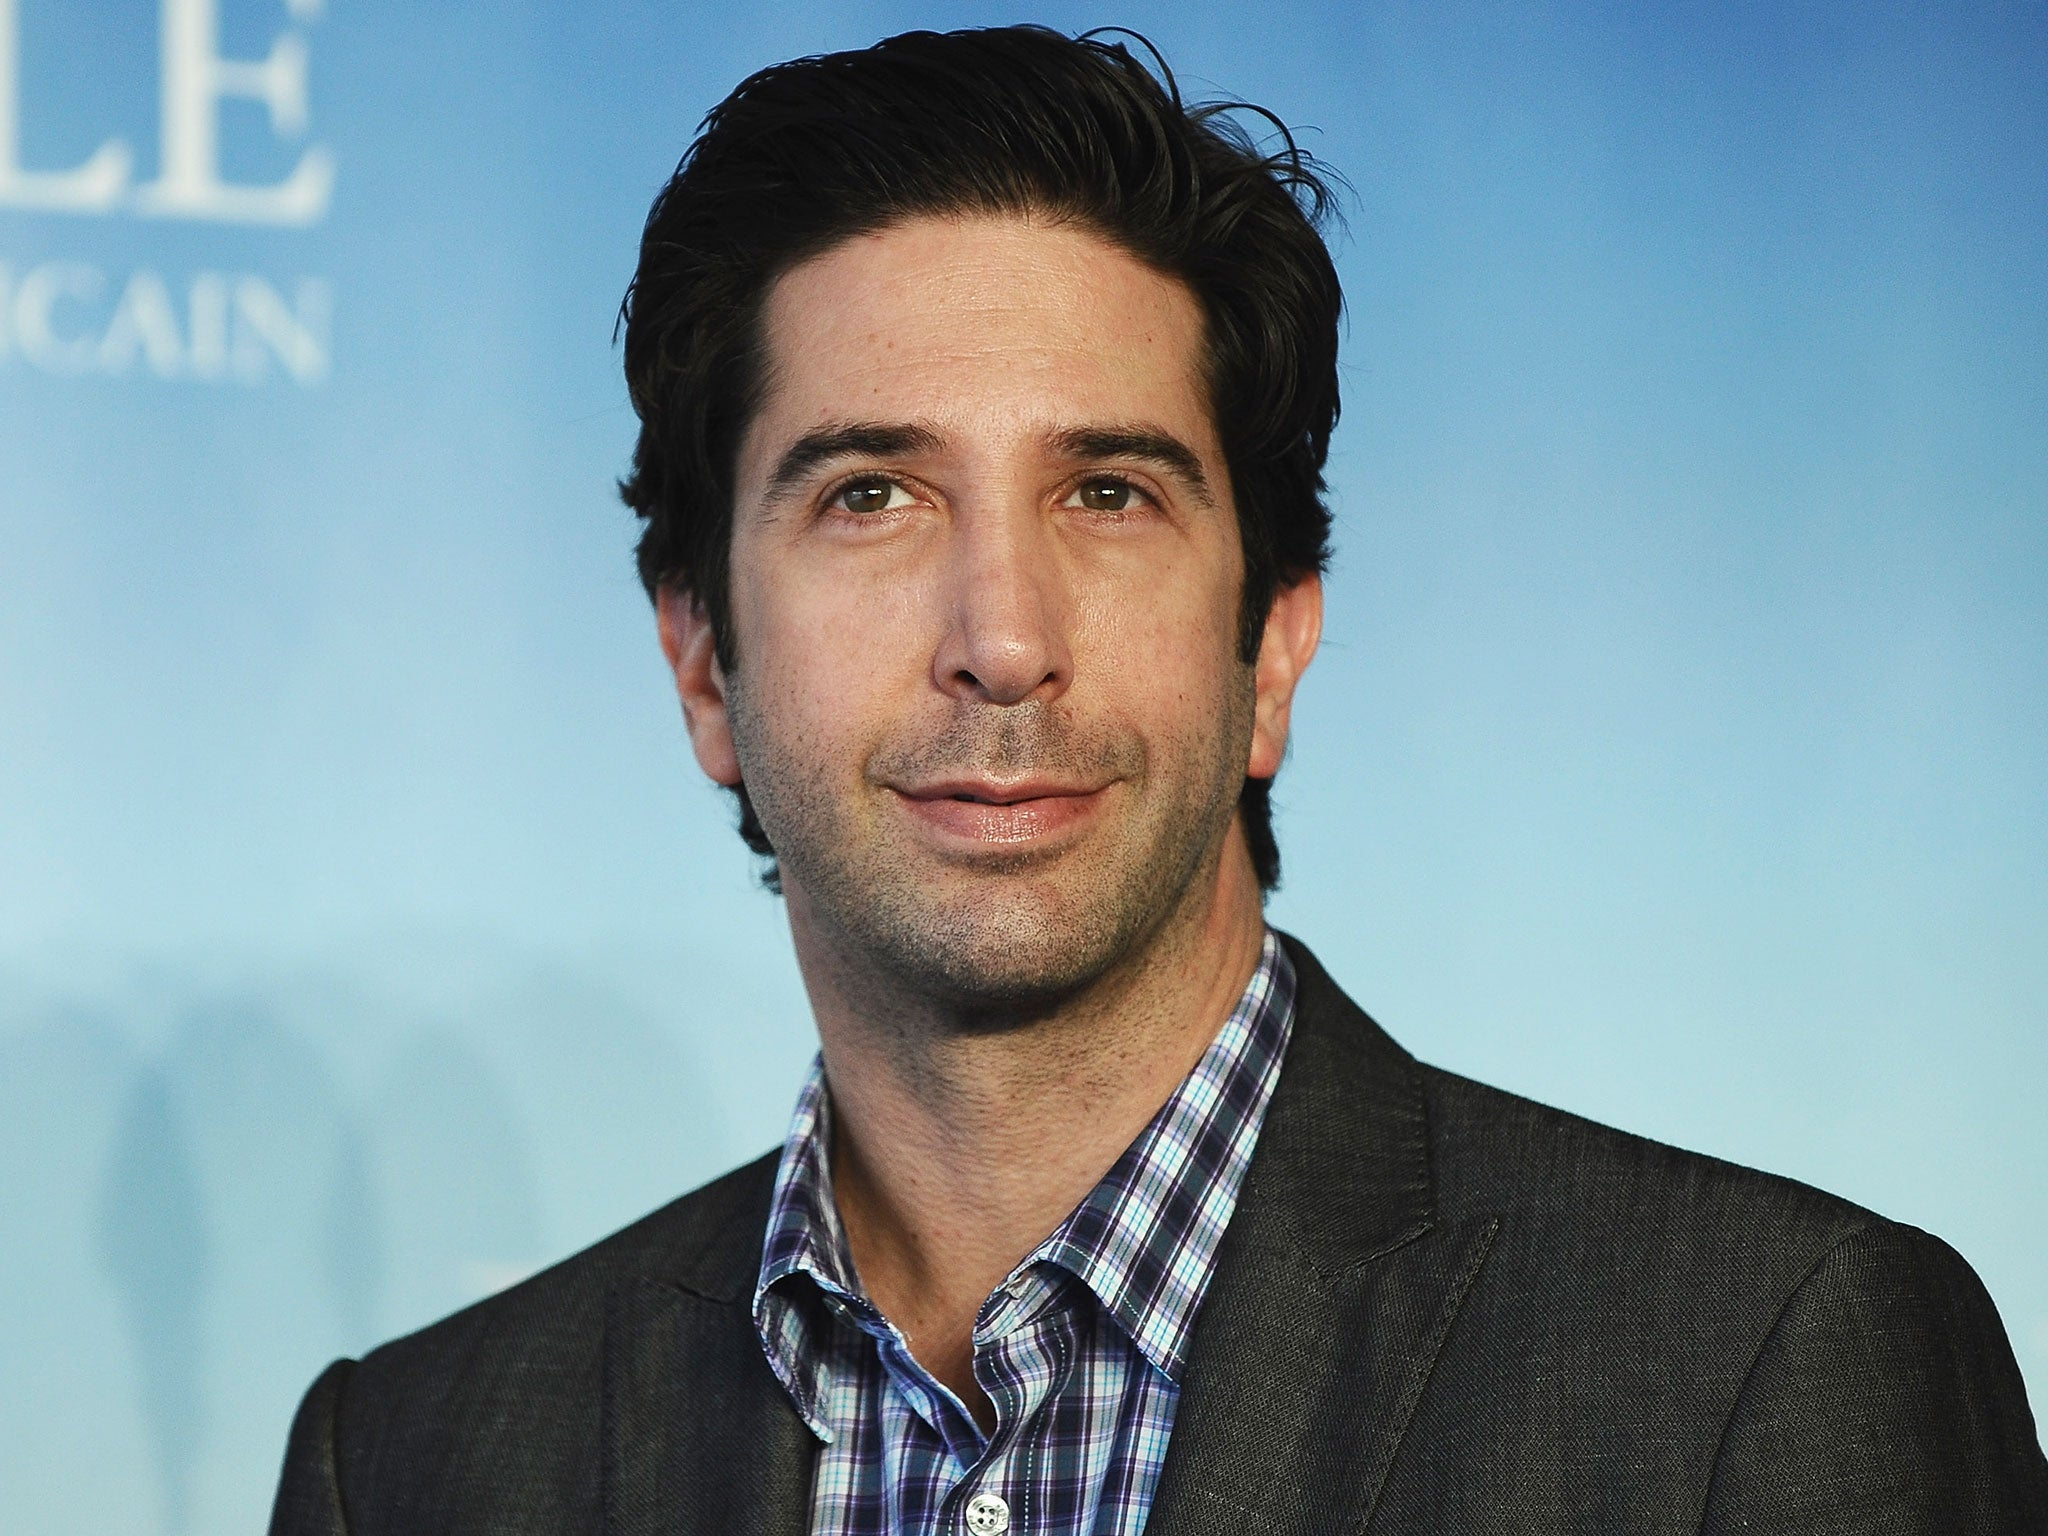 David Schwimmer 2018: Haircut, Beard, Eyes, Weight ...